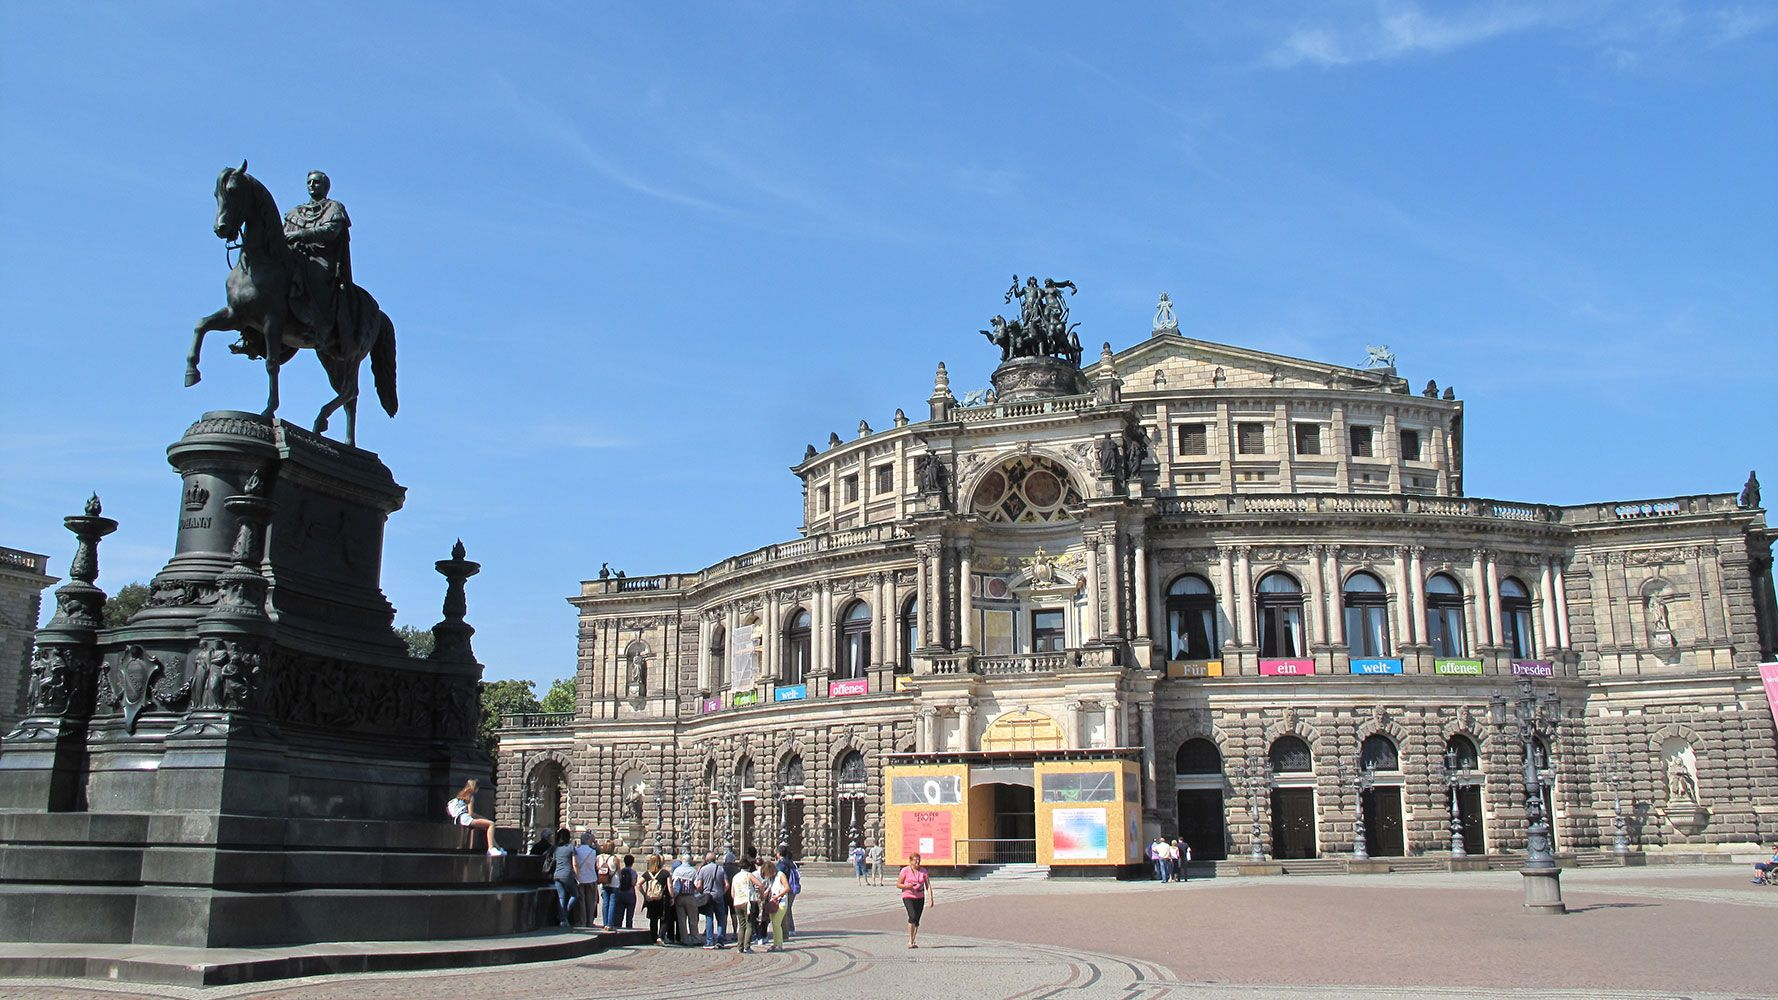 Opera house in Dresden